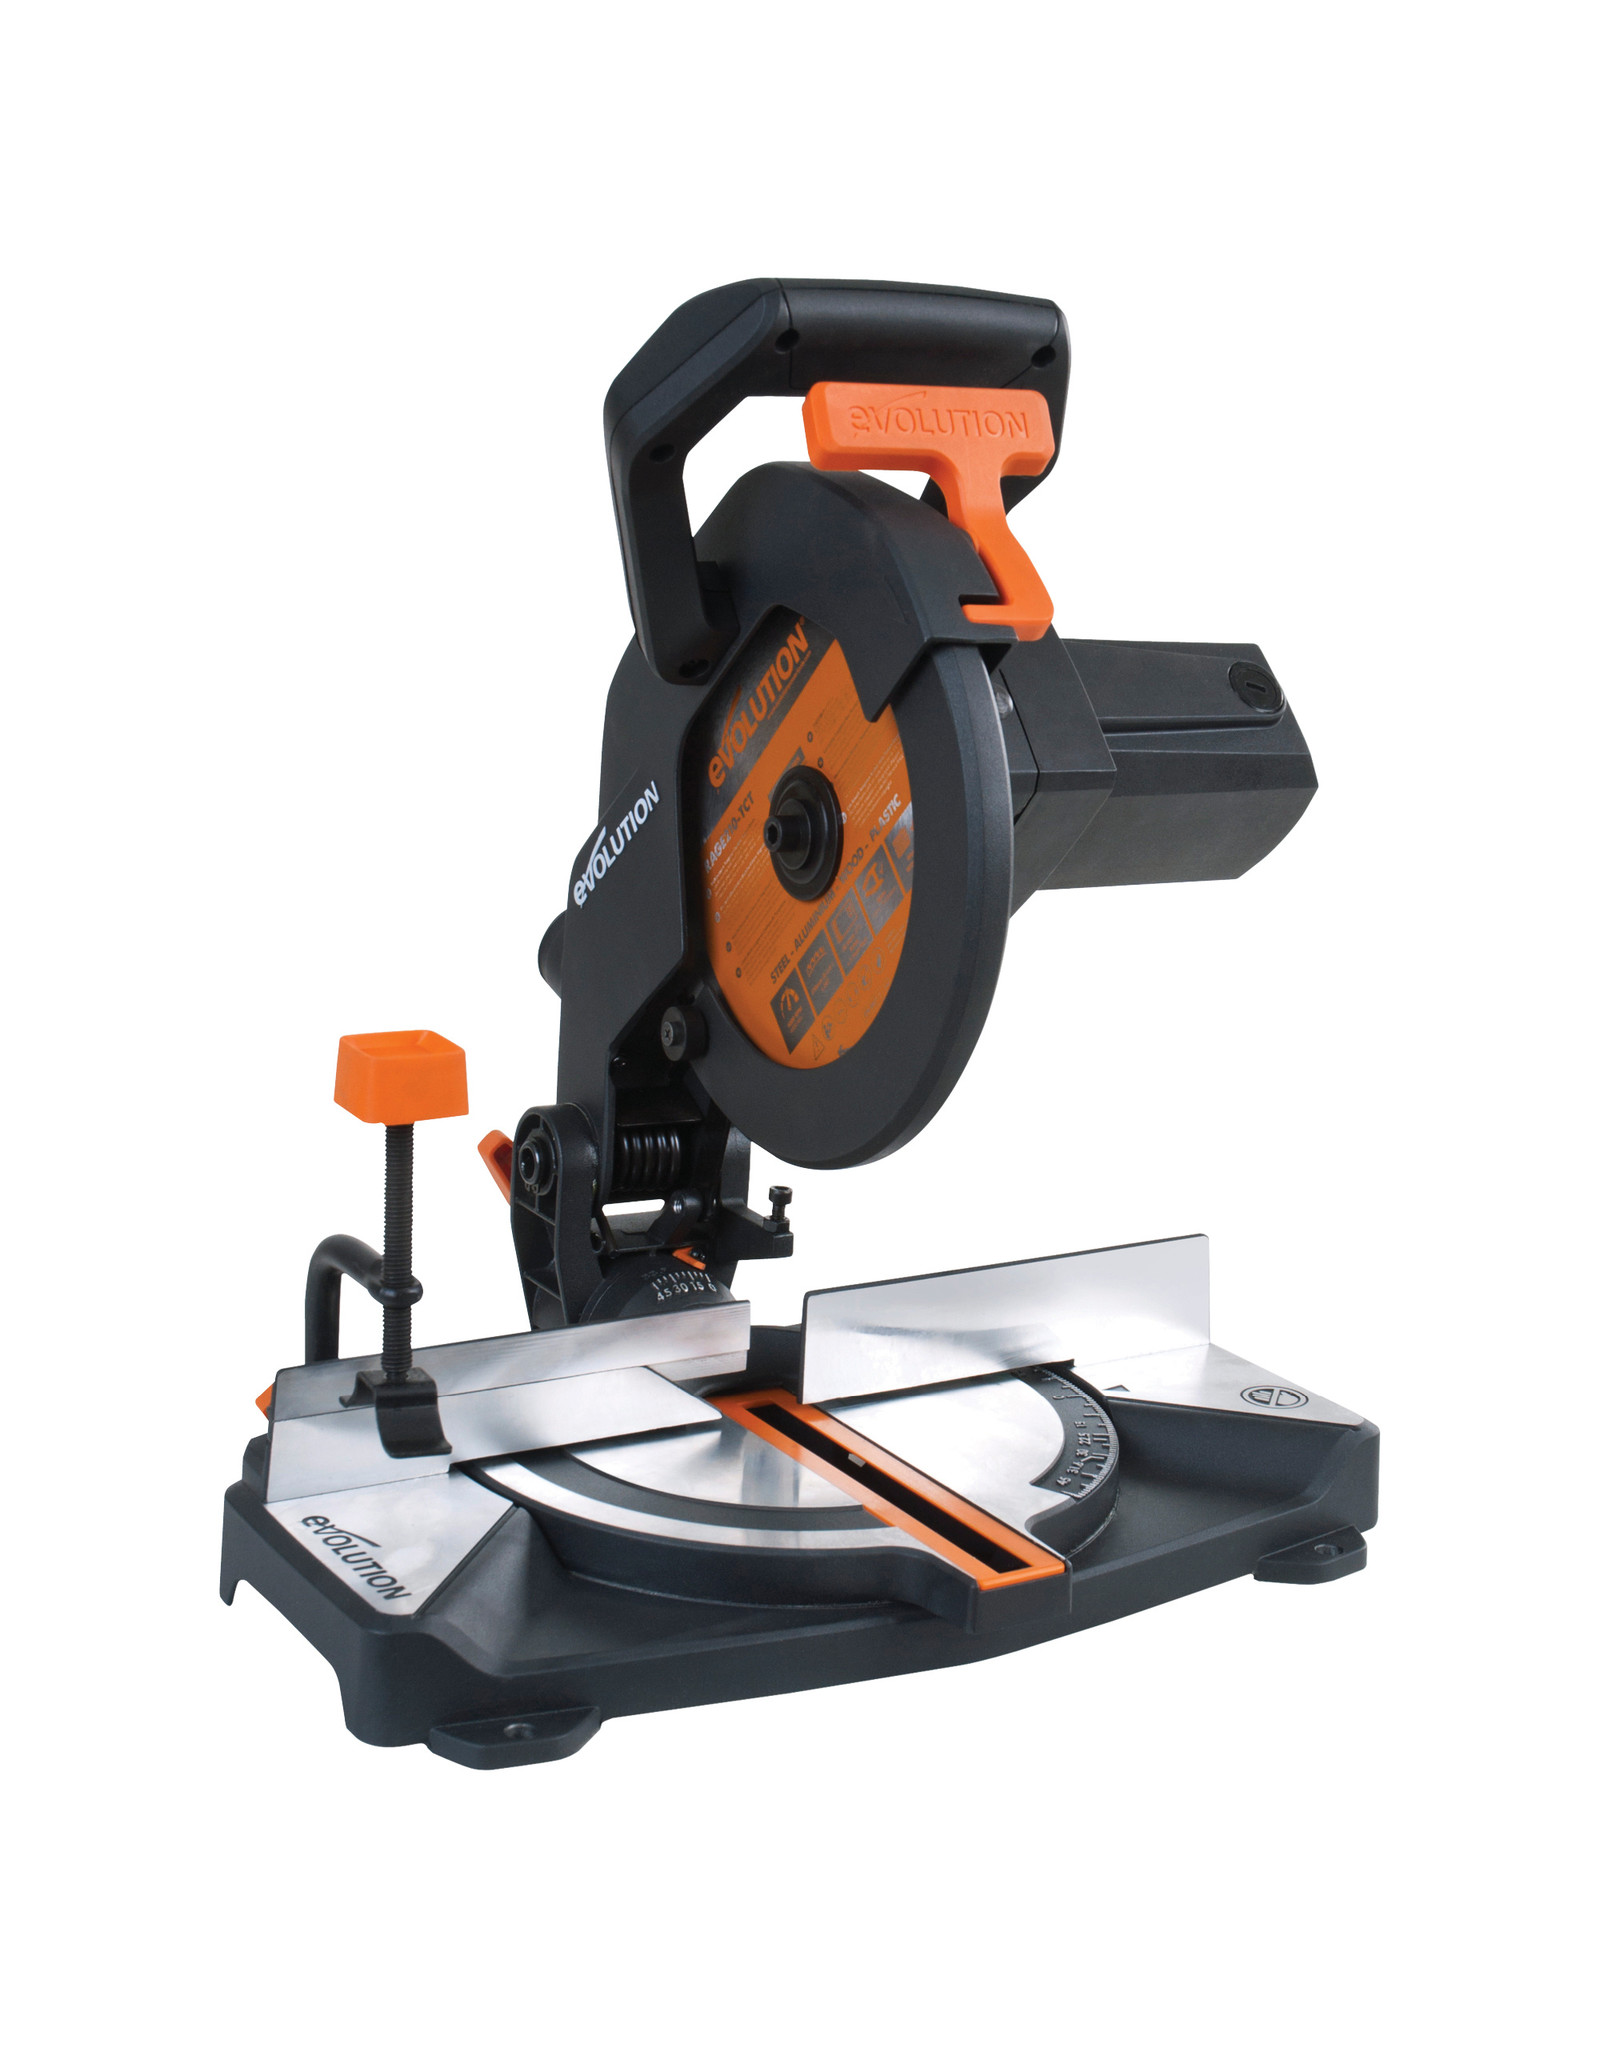 Evolution Power Tools Build Line VEELZIJDIGE VERSTEKZAAG RAGE R210 CMS+